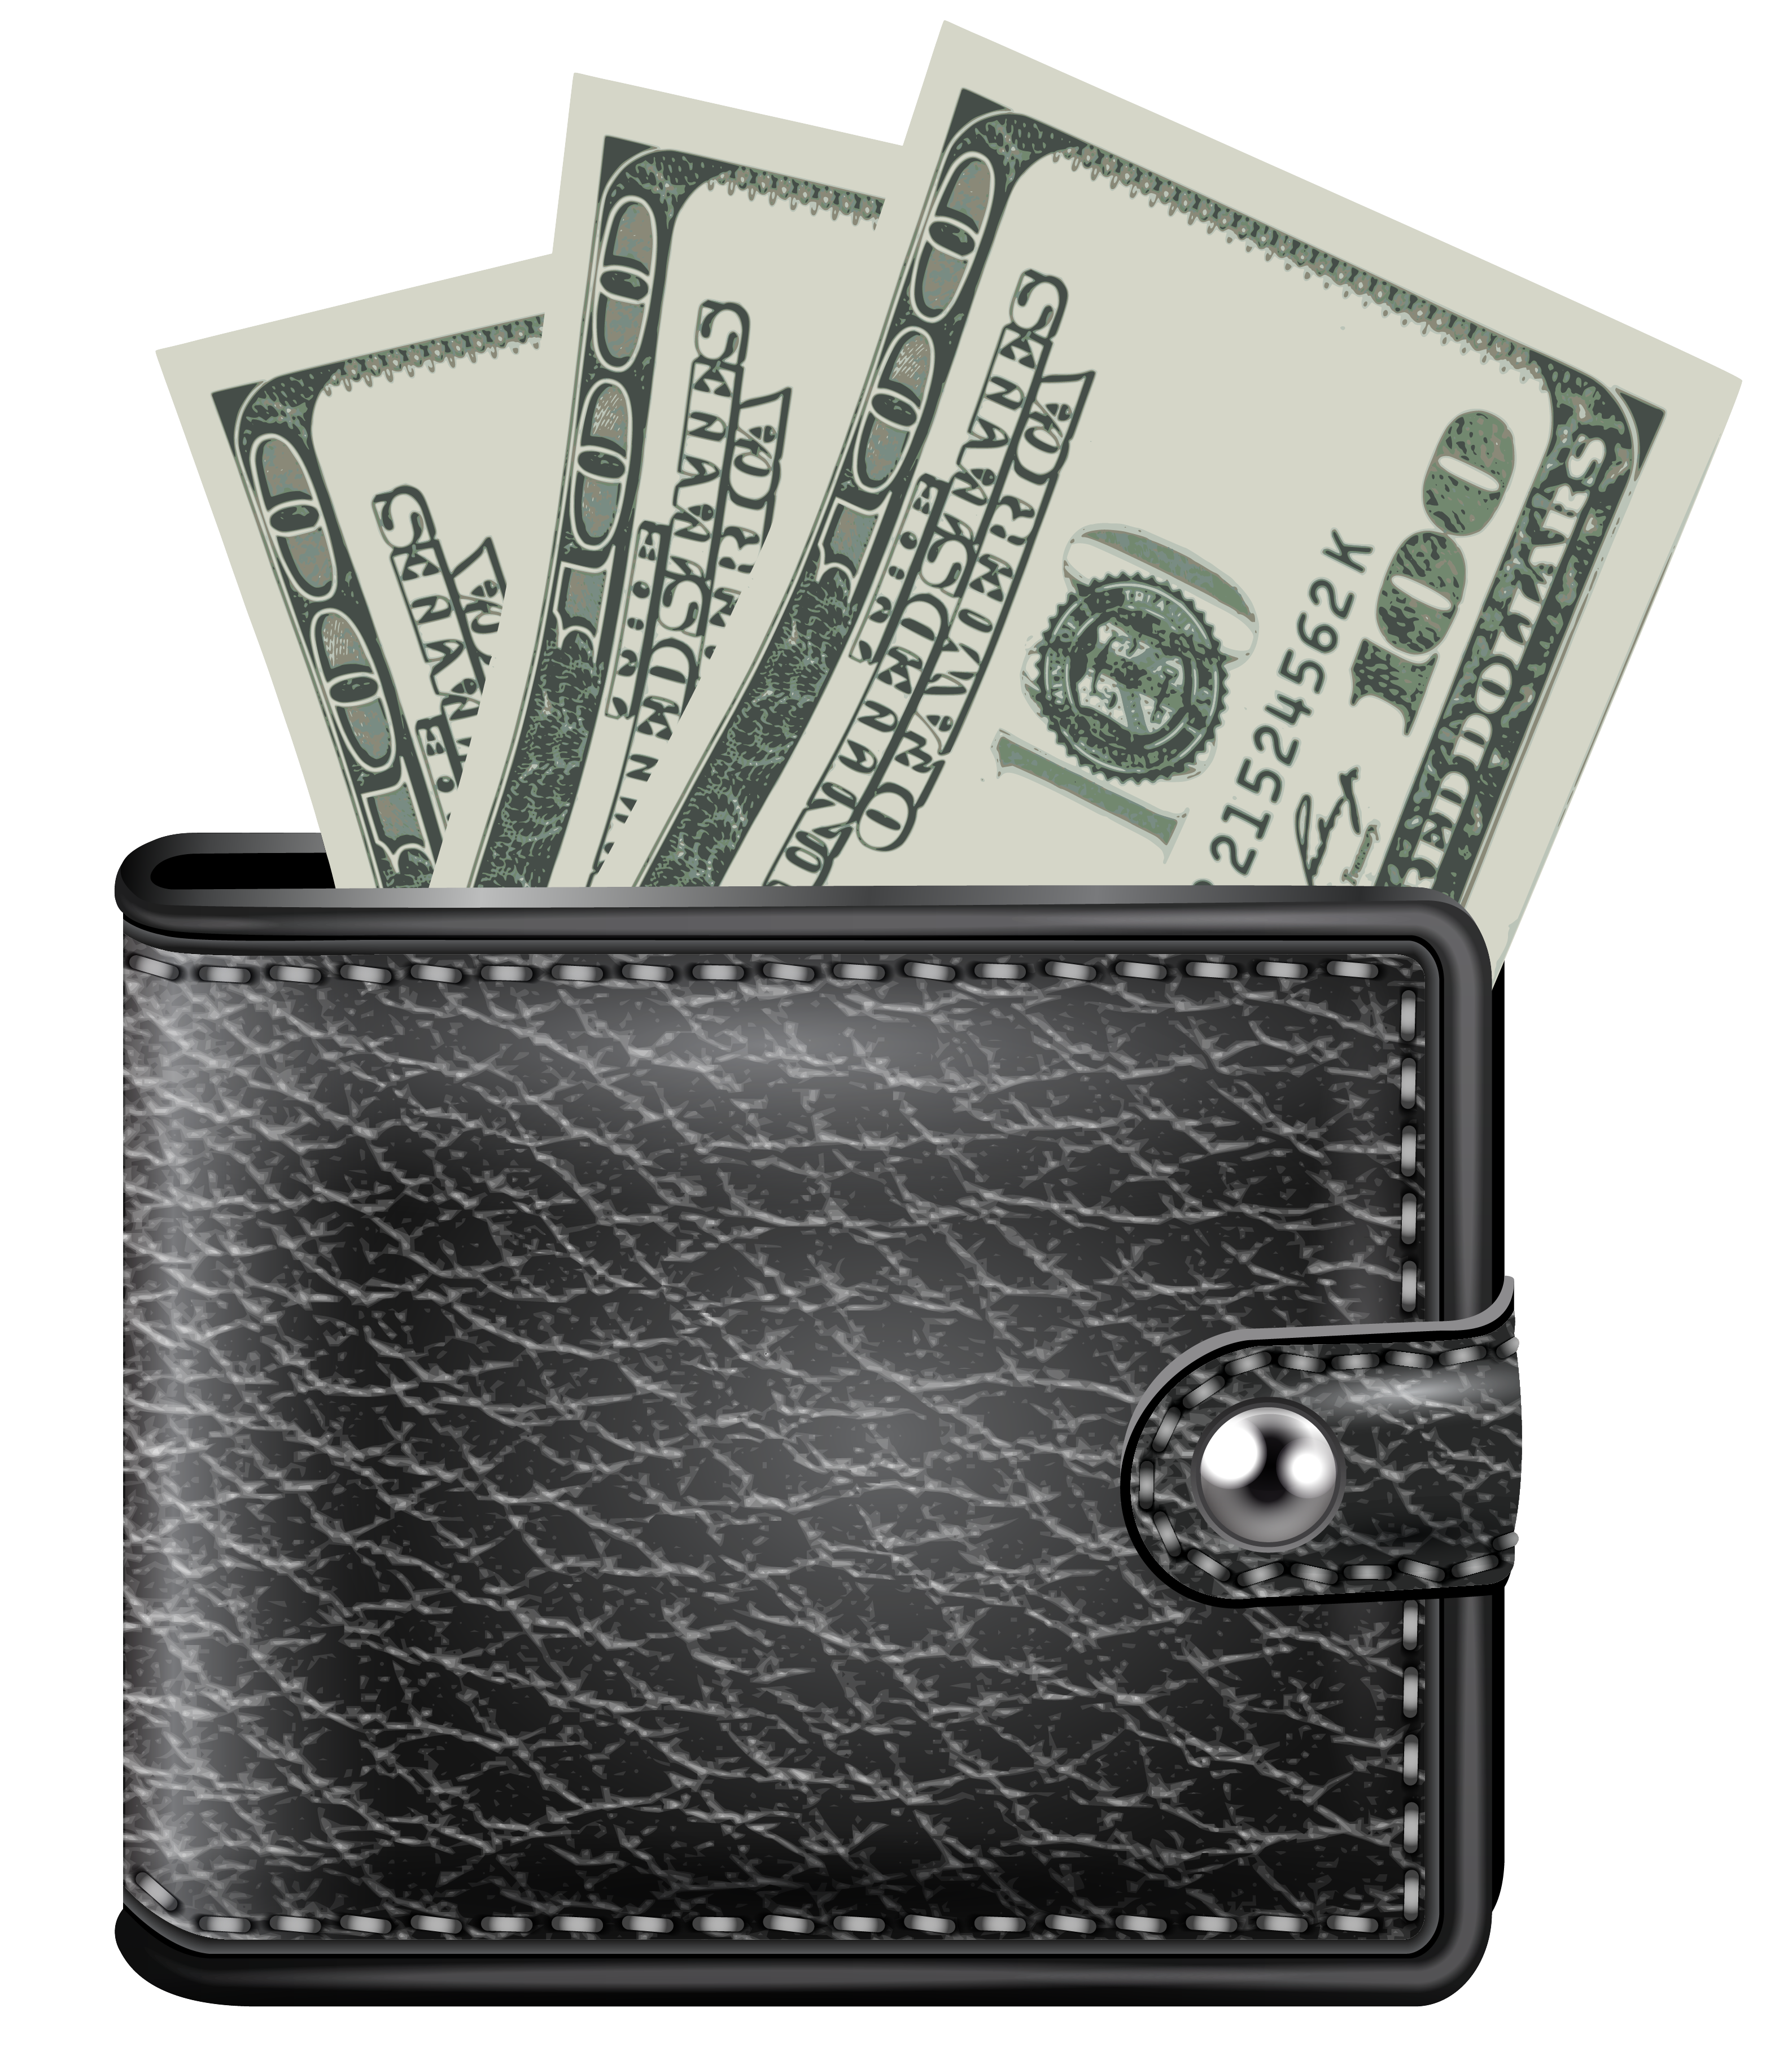 money wallet dollar image money pictures download #8333